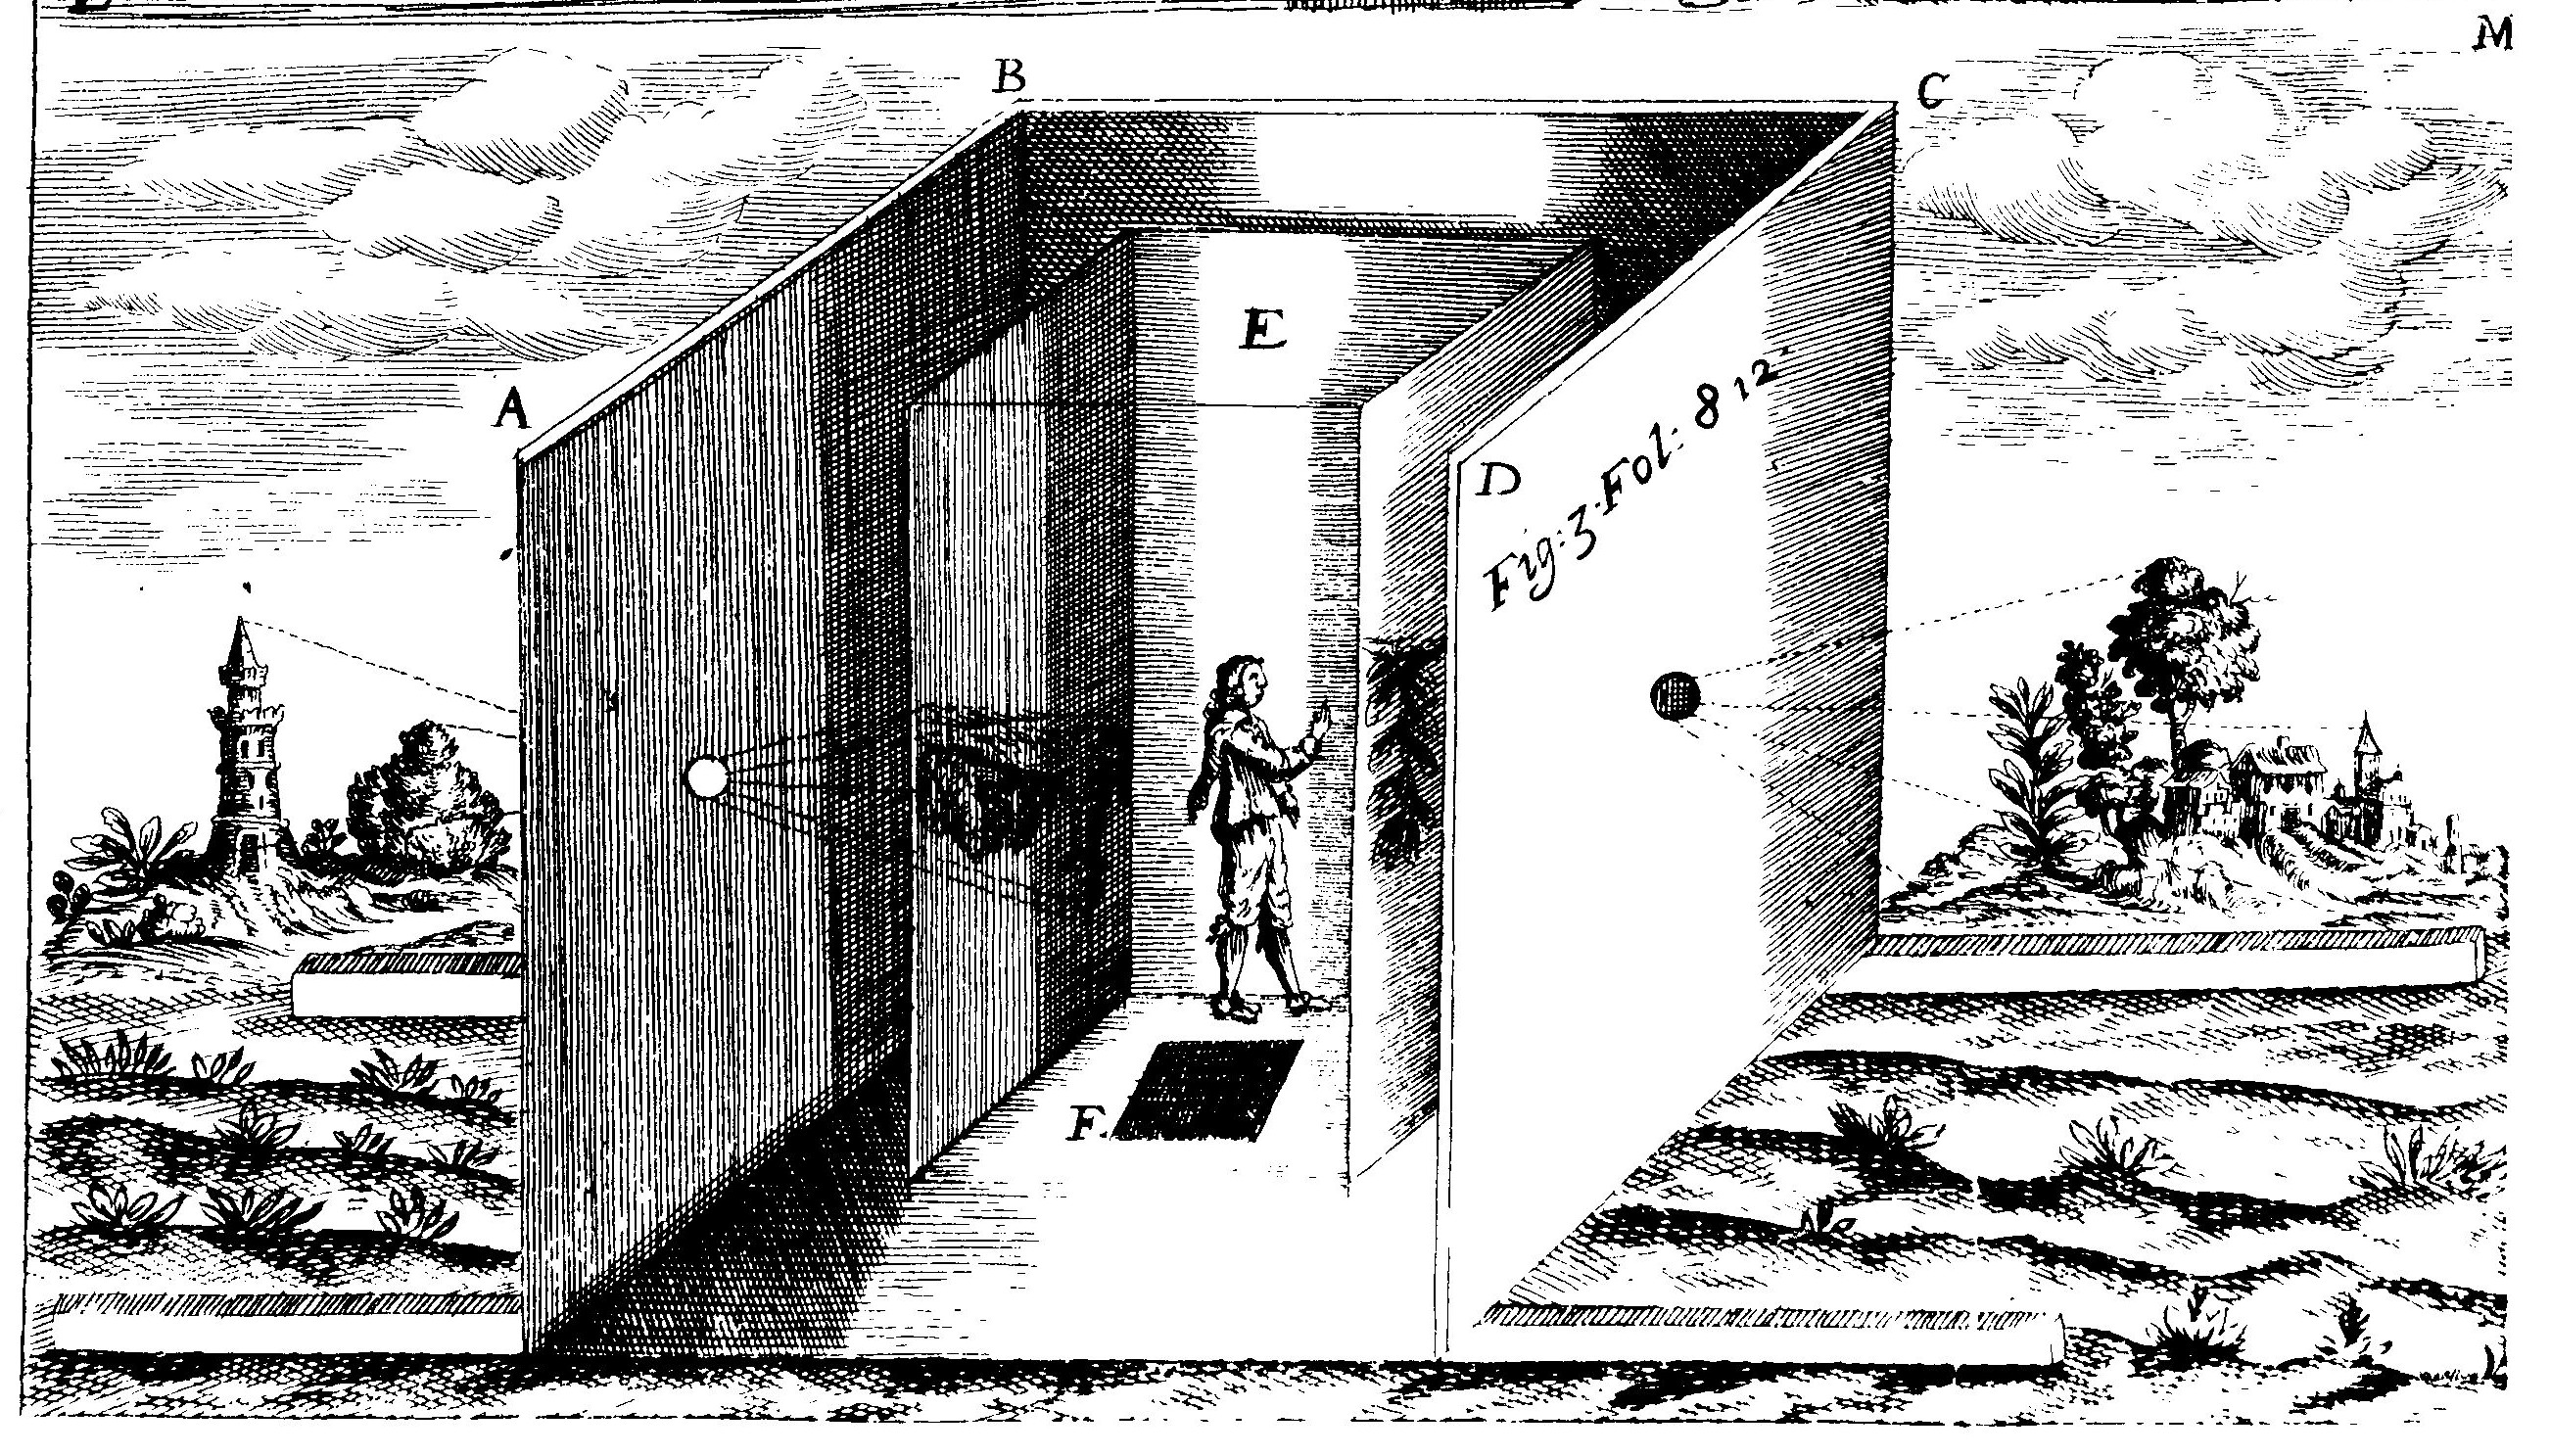 File:1646 Athanasius Kircher - Camera obscura.jpg